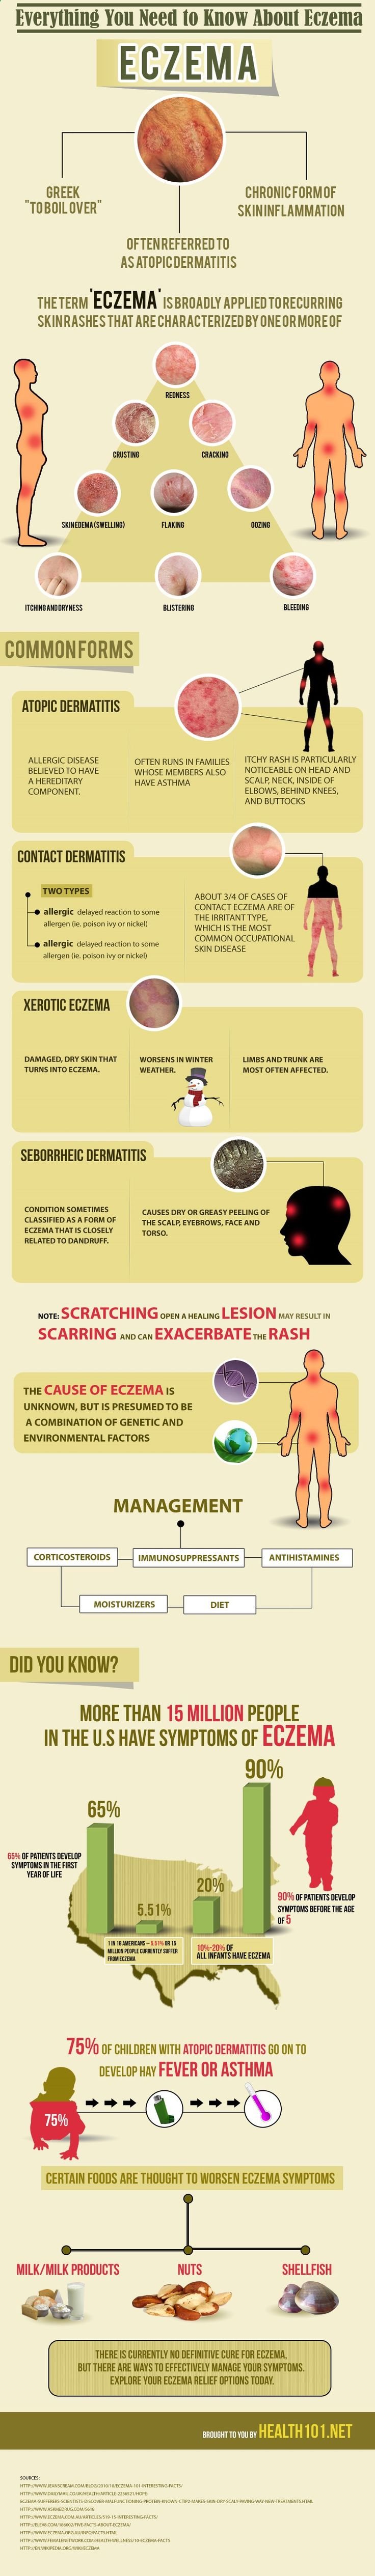 #Eczema Natural Treatment Infographic. Give Derma-Ease with Emu Oil a try! www.longviewfarms...